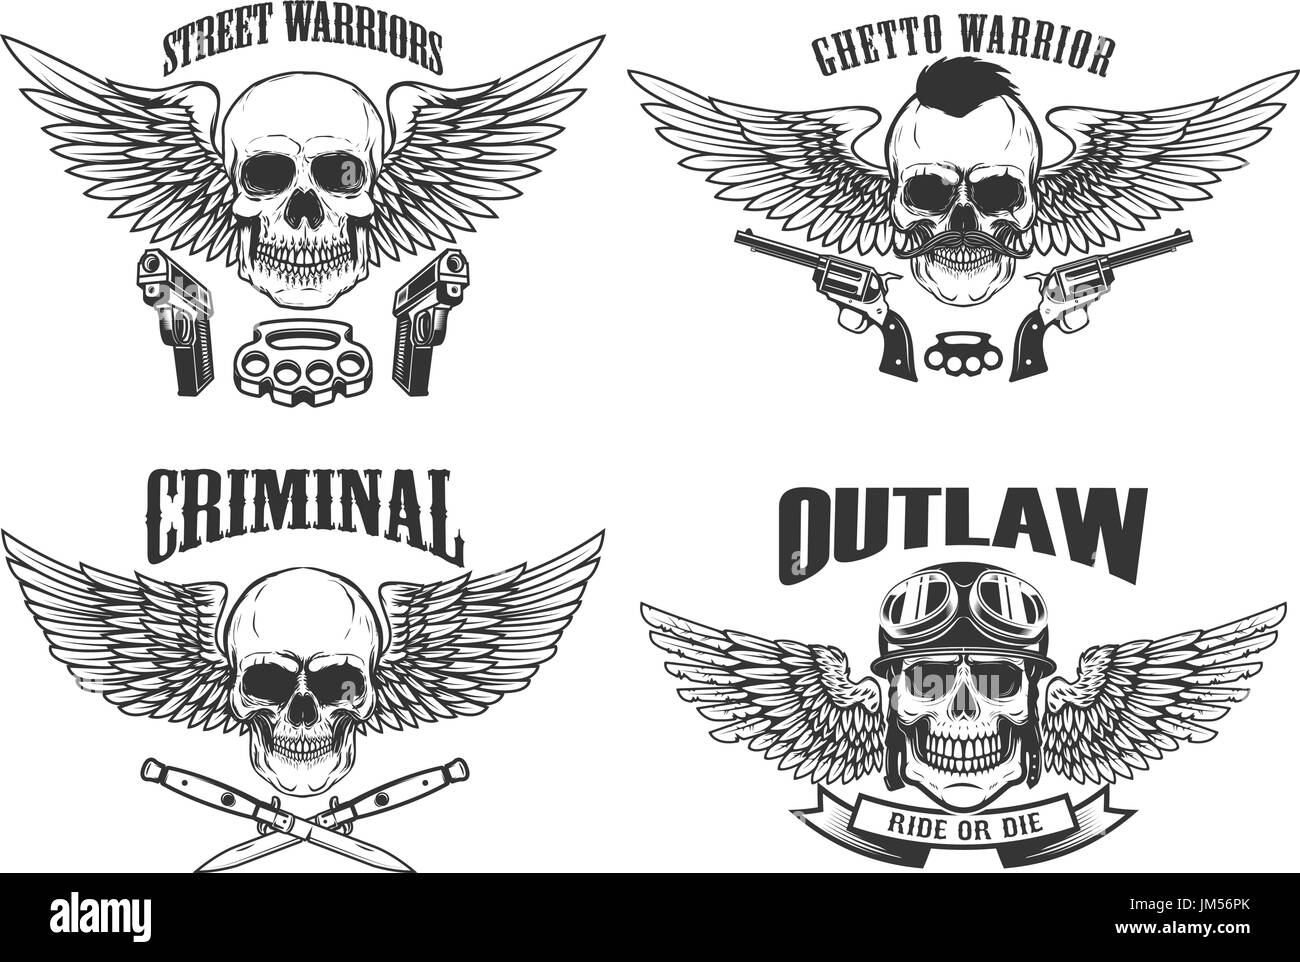 The Outlaw Illustration Stock Photos & The Outlaw ...